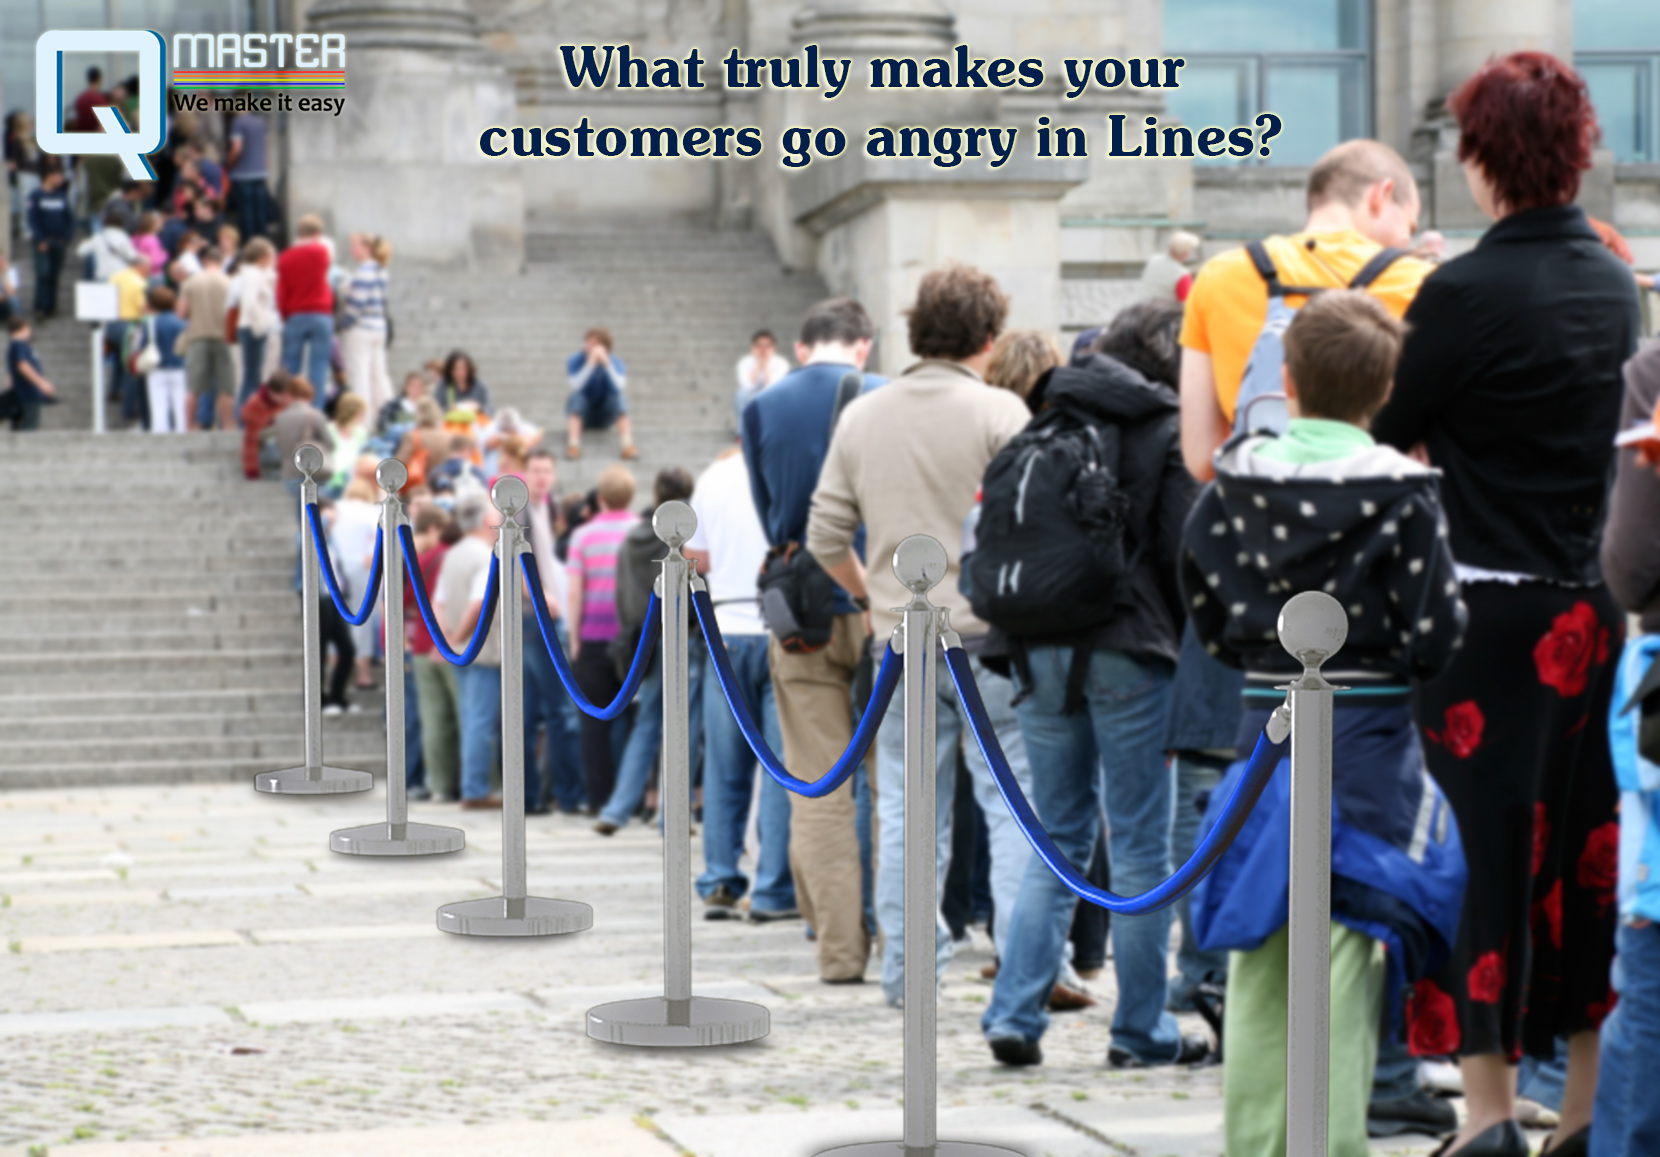 What truly makes your customers go angry in Lines